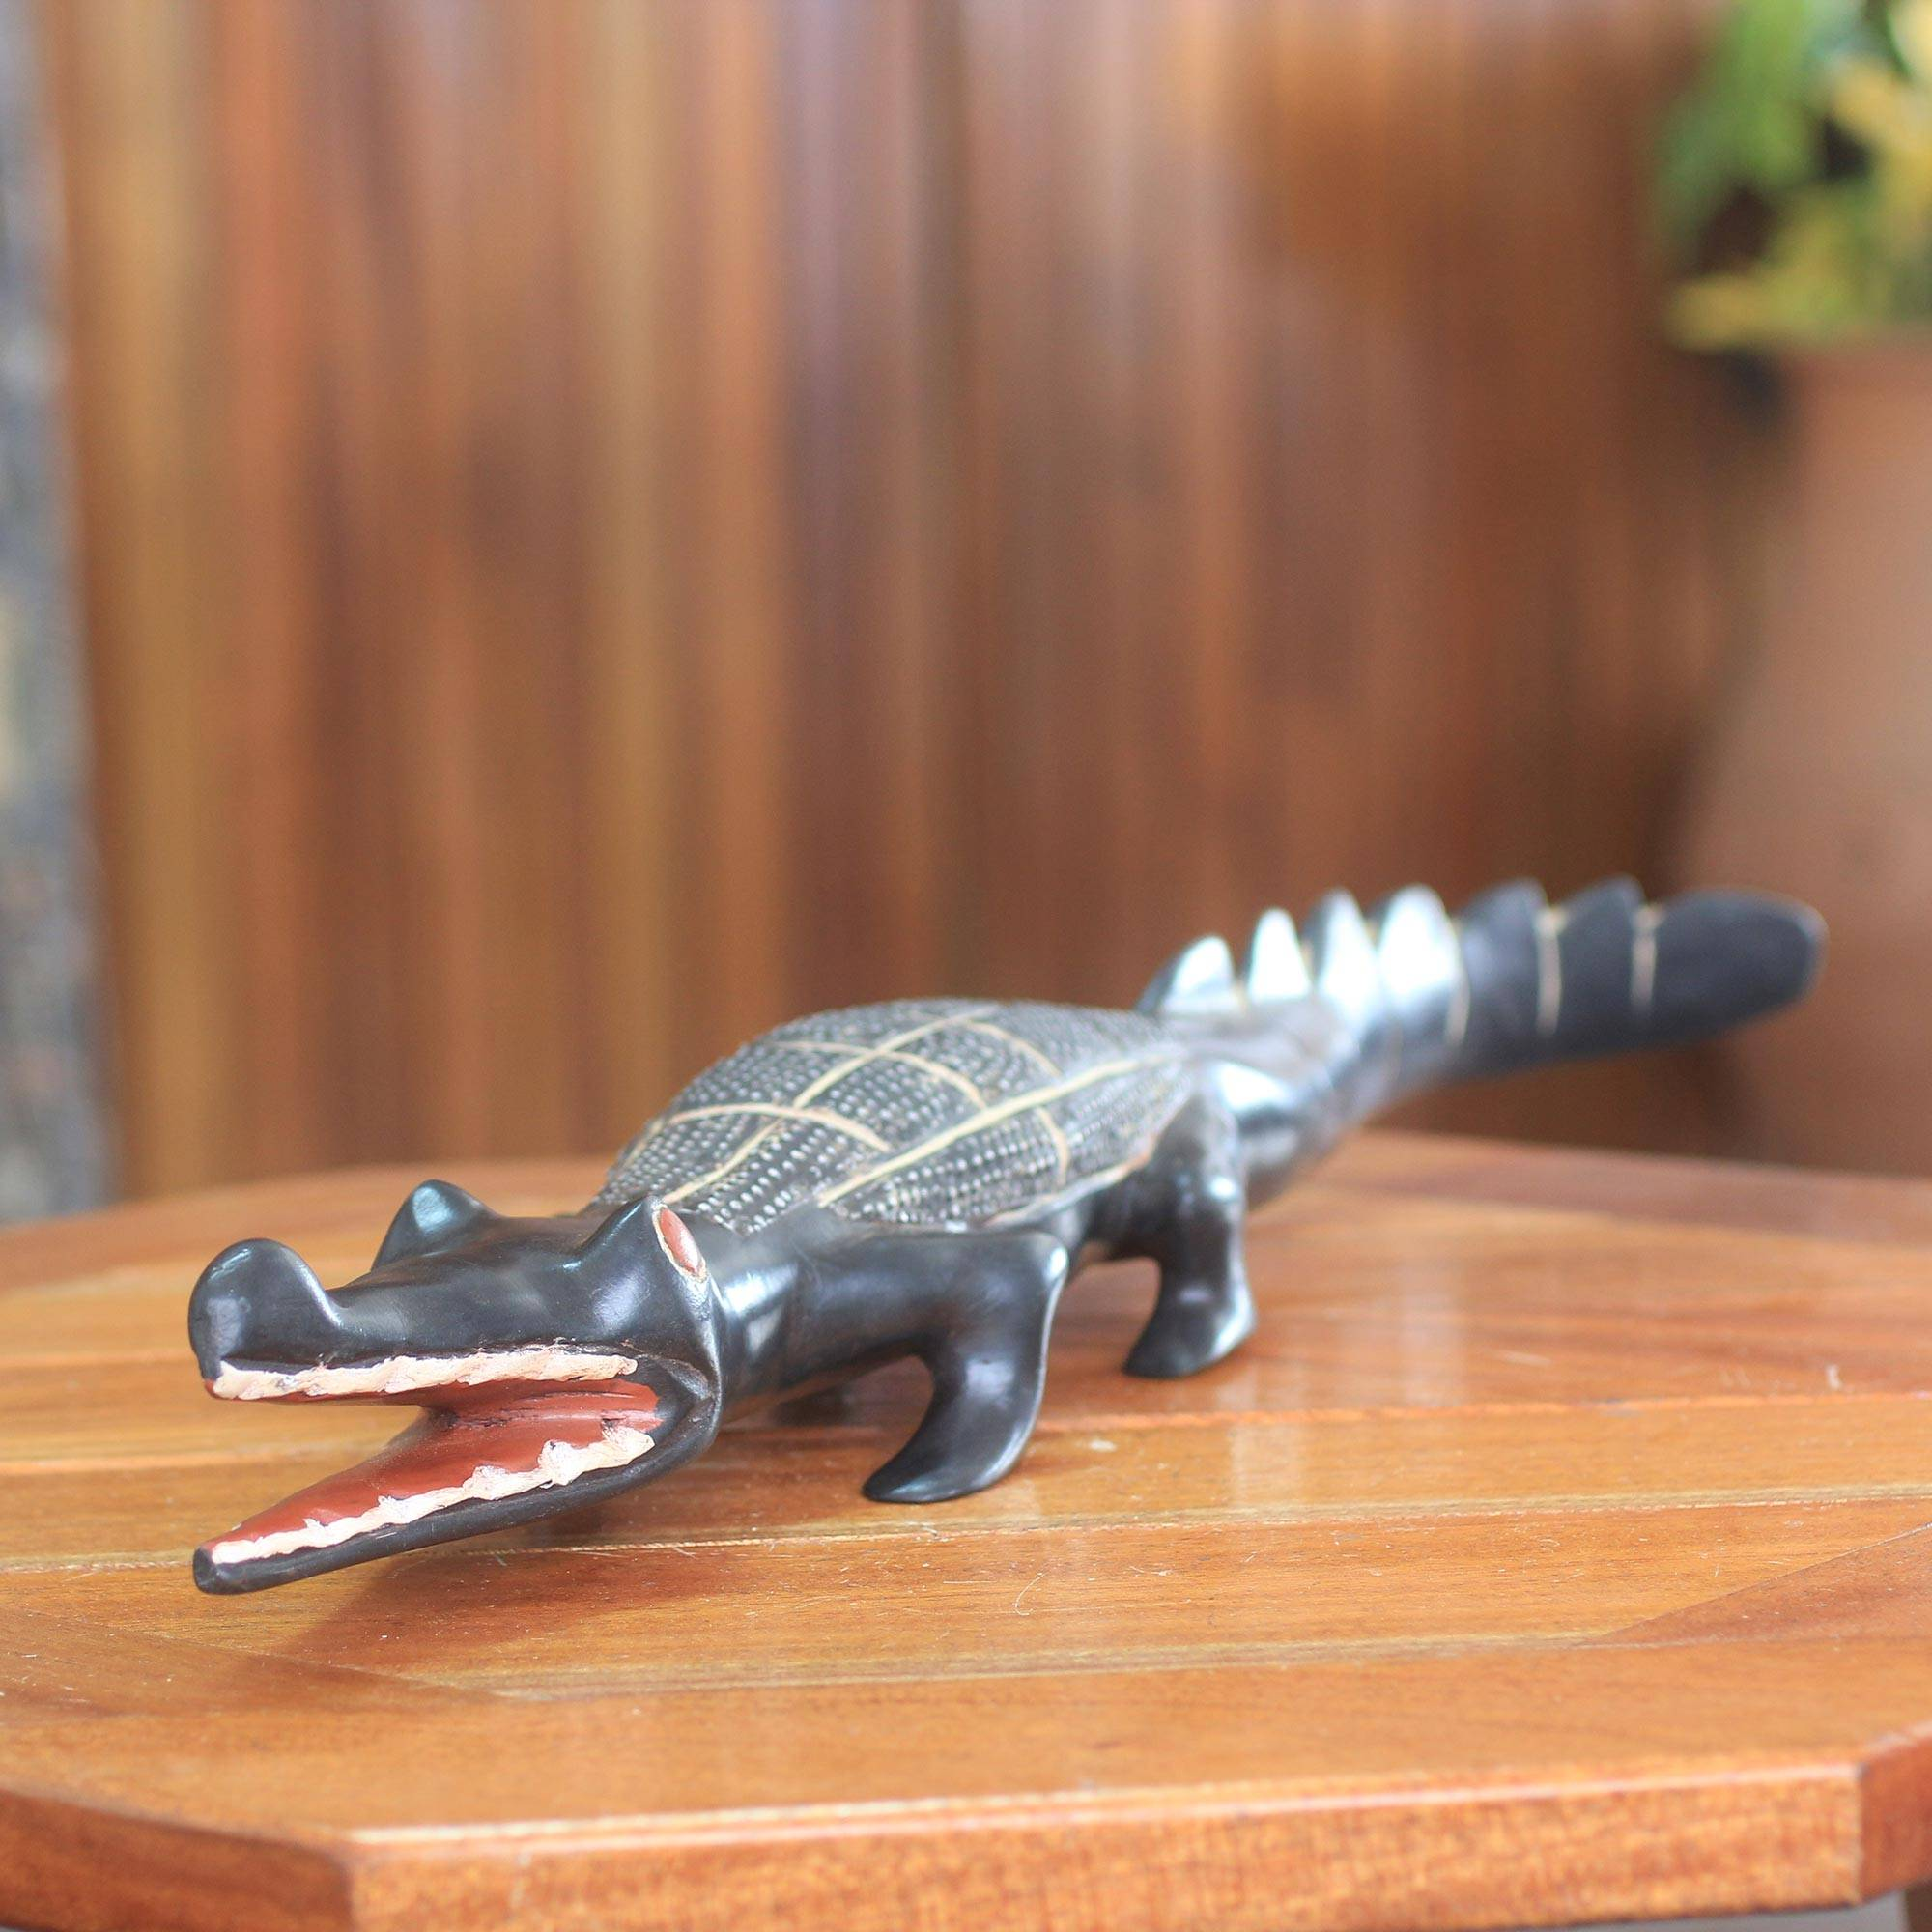 ECO- friendly gift Wooden Crocodile figurine table decor hand carved modern sculpture collectable toy sculptures Gift idea wood art